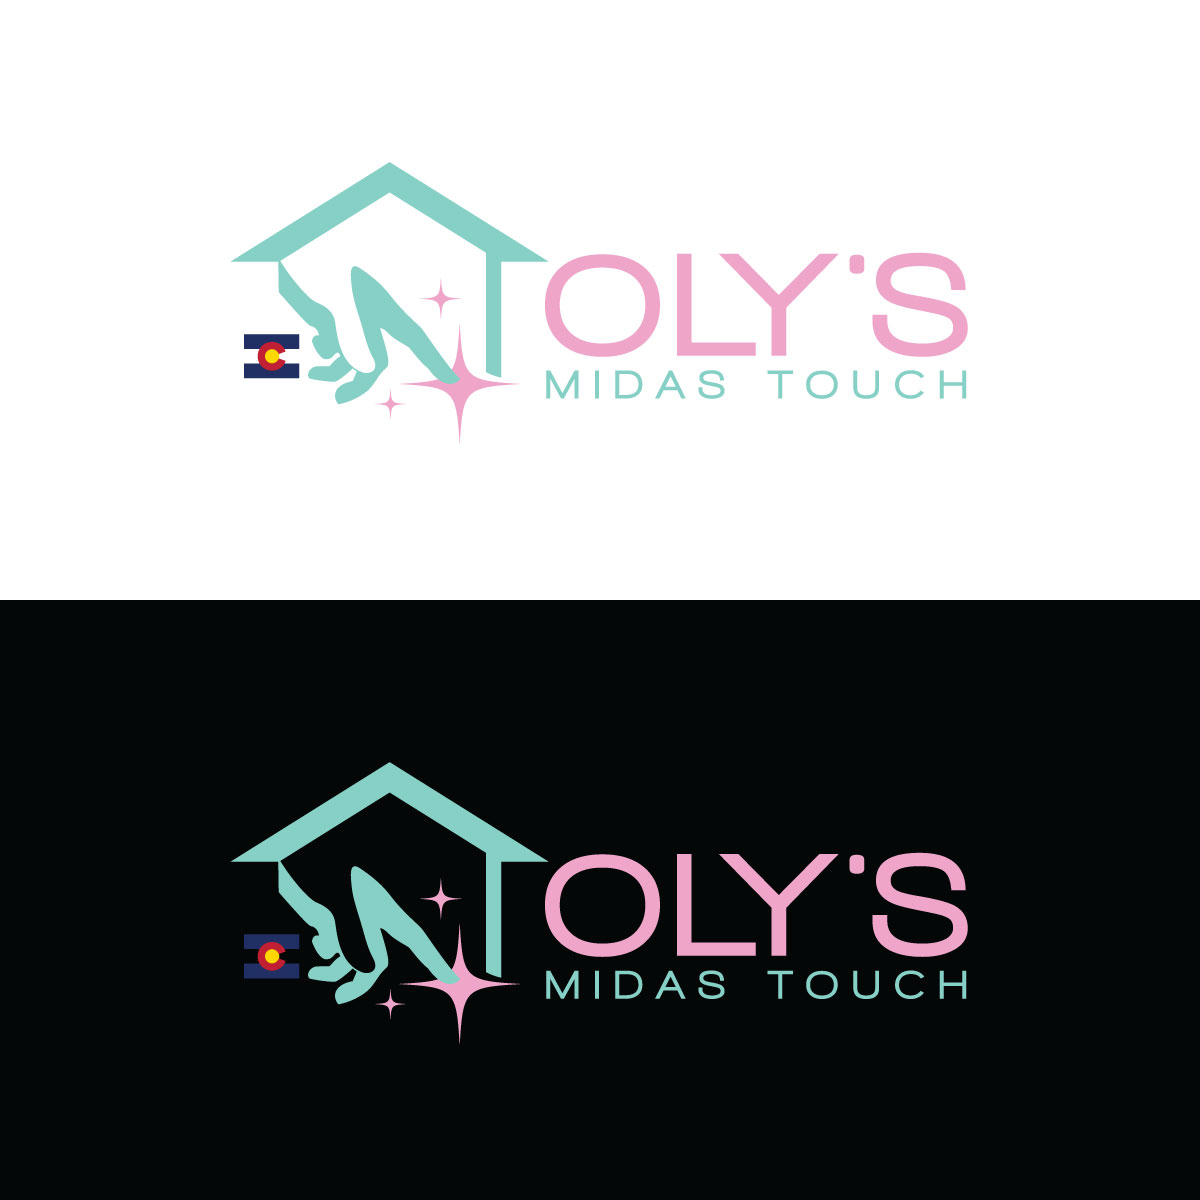 Olys Midas Touch 2019 Which Is A Cleaning Company 89 Logo Designs For Oly S Midas Touch Page 4